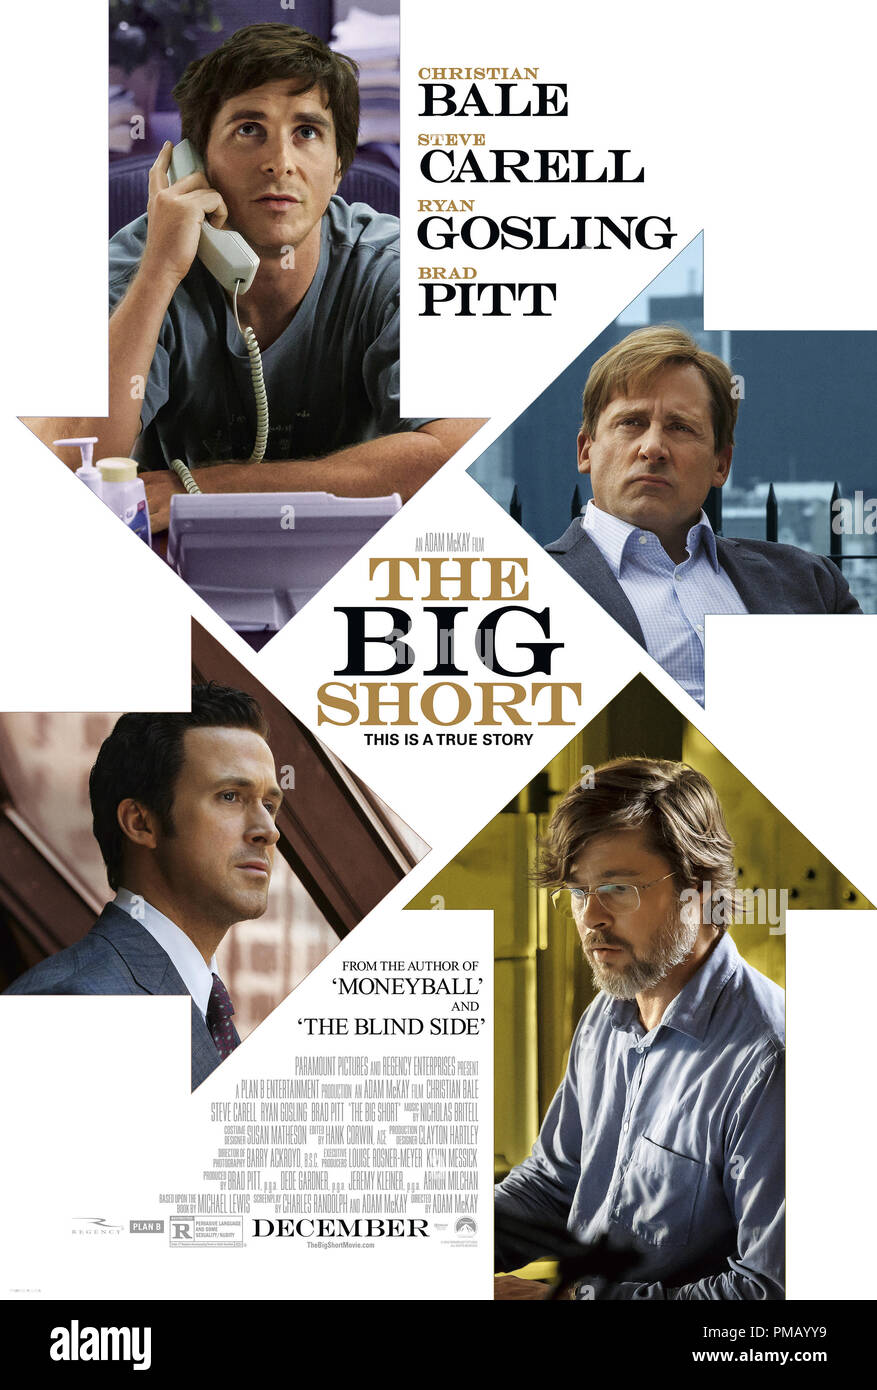 The Big Short from Paramount Pictures and Regency Enterprises - Poster - Stock Image